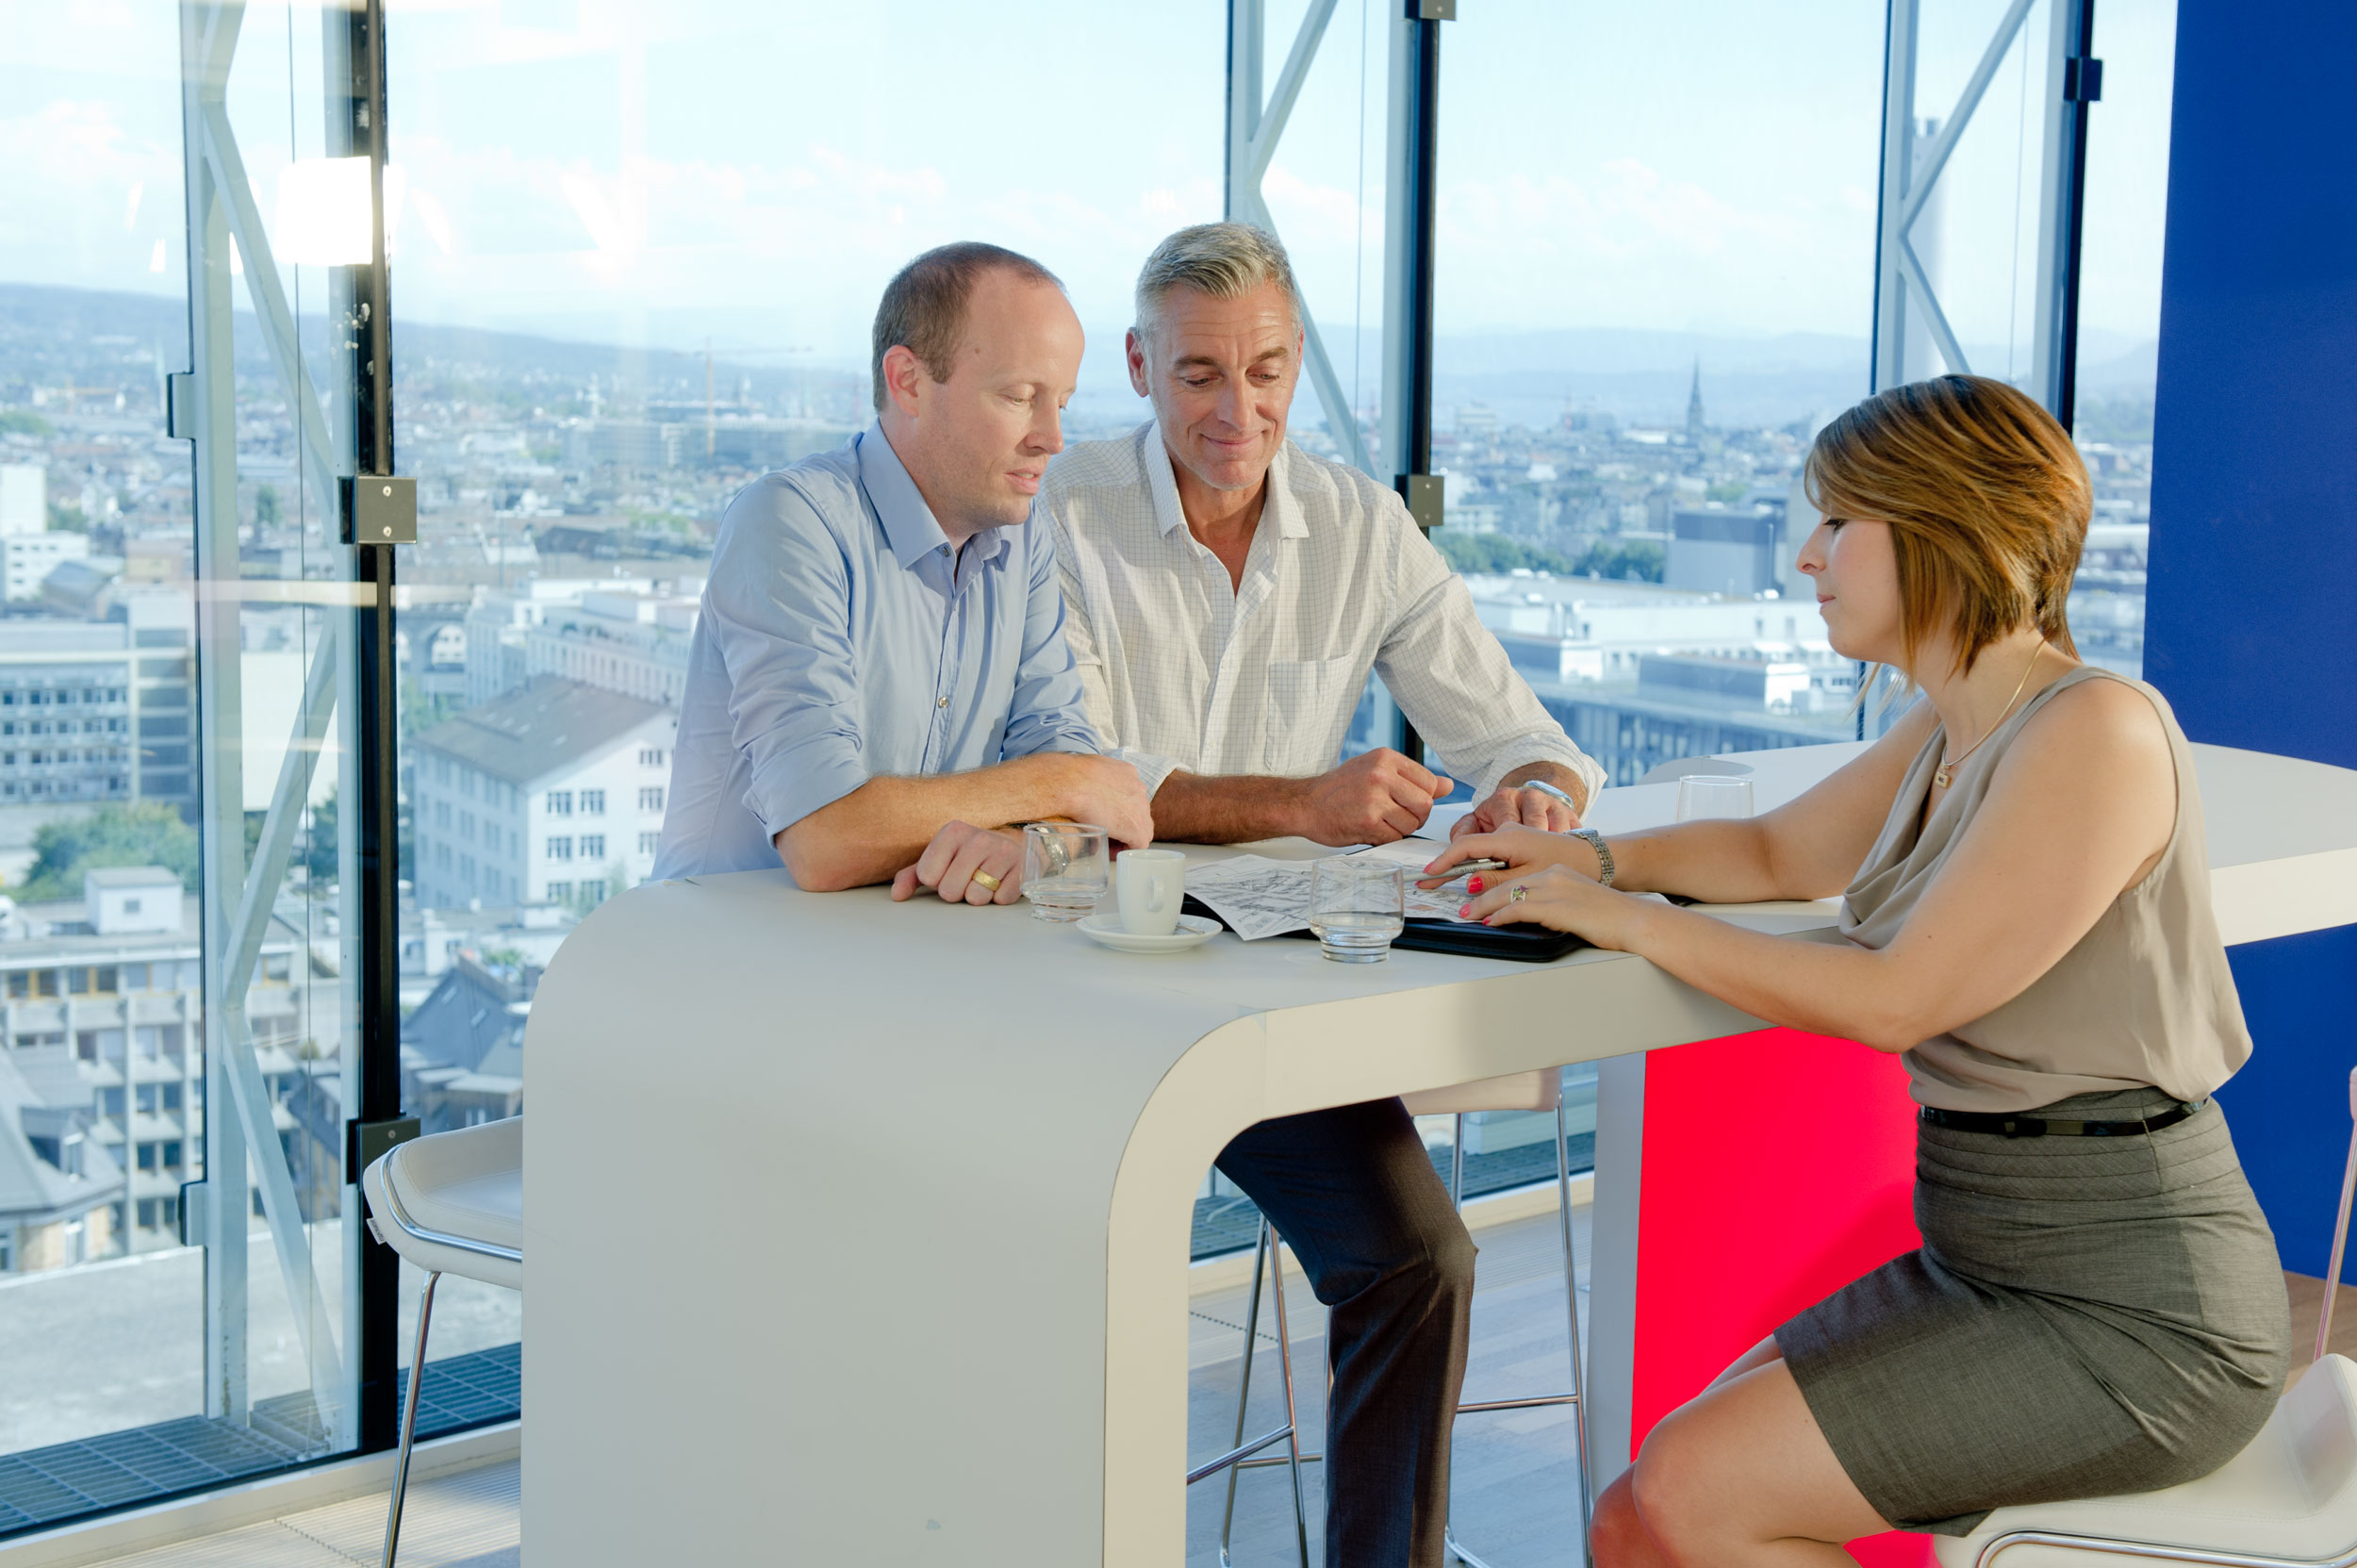 three person having a conversation in an office unretouched